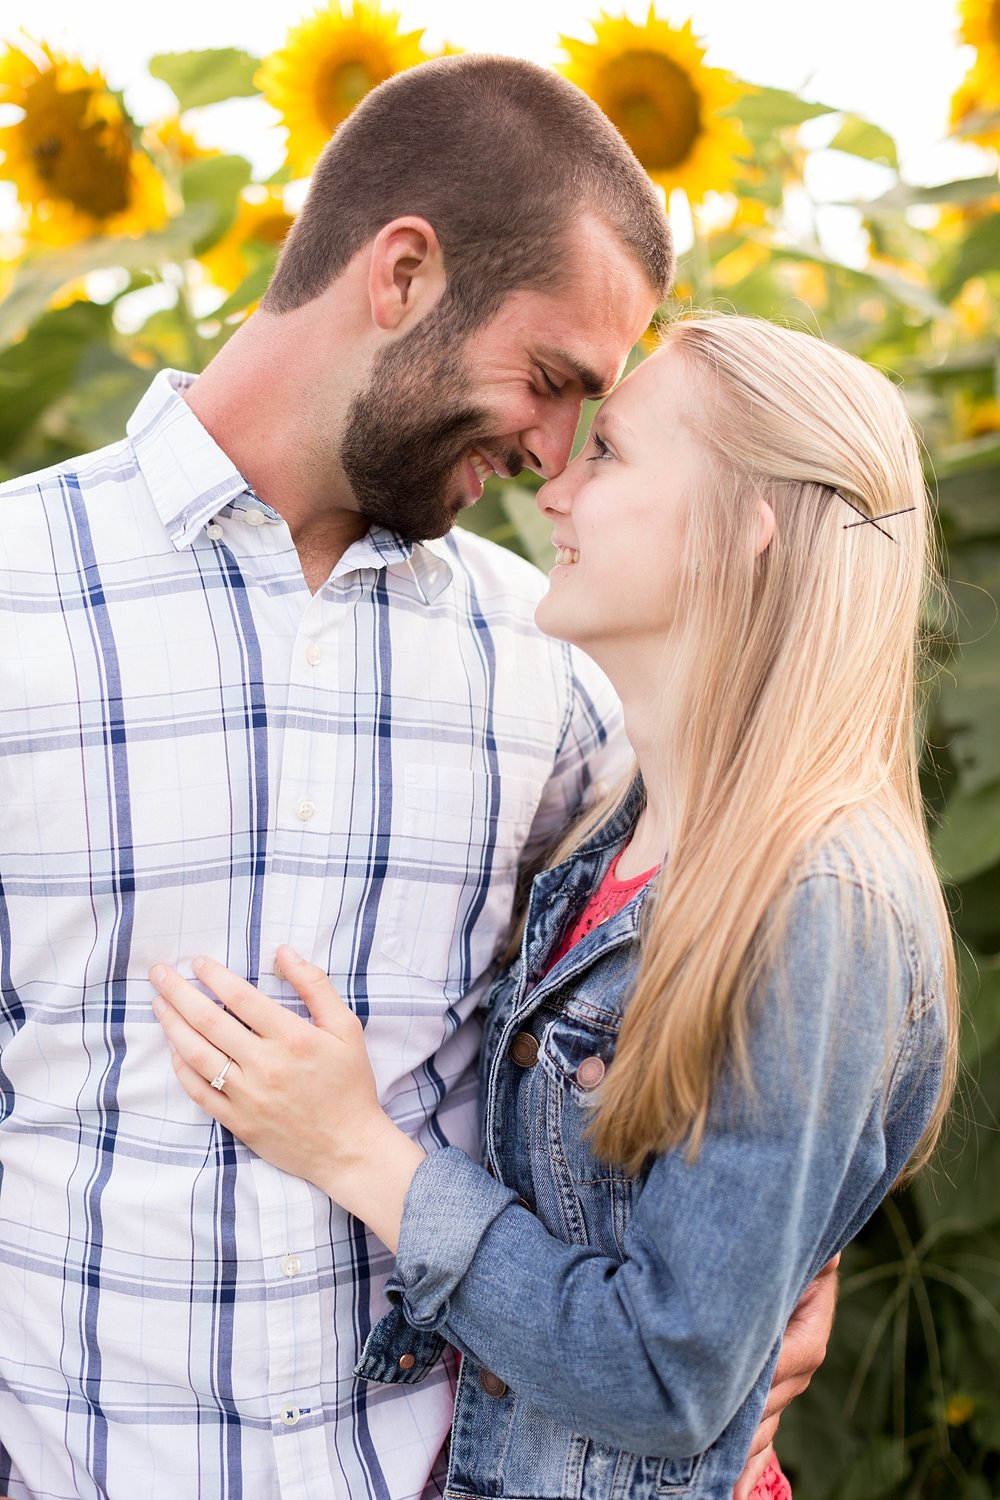 Romantic engagement session in sunflower field lancaster pa wedding photographer photo_0007.jpg